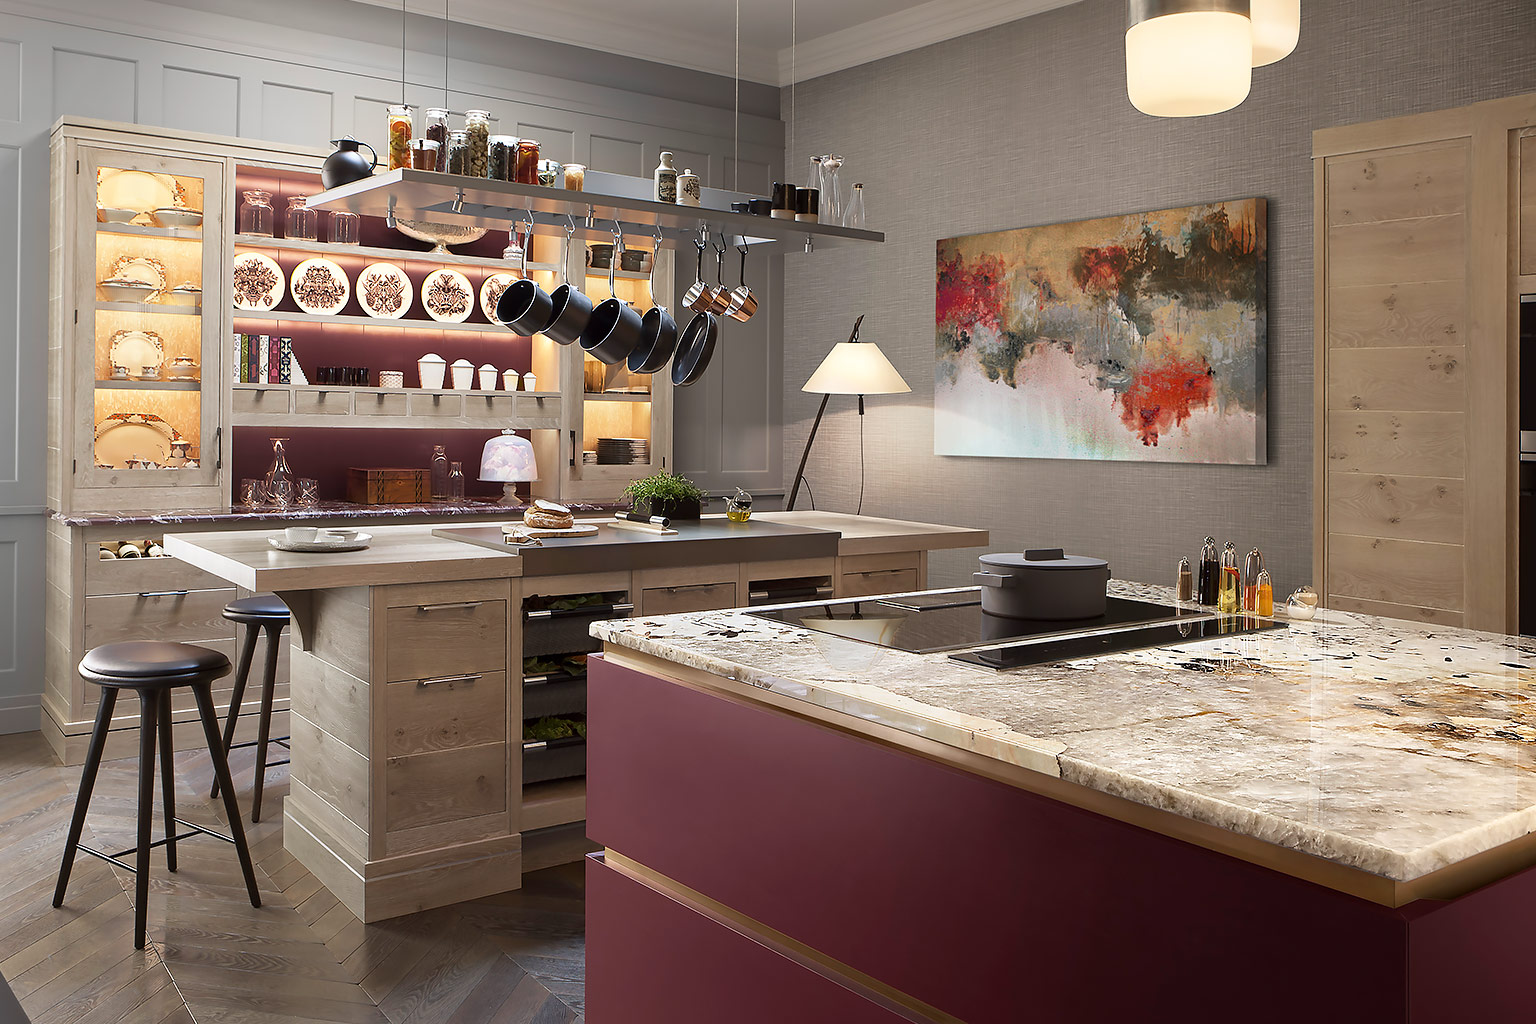 A Brasserie kitchen with a deep red colour central island